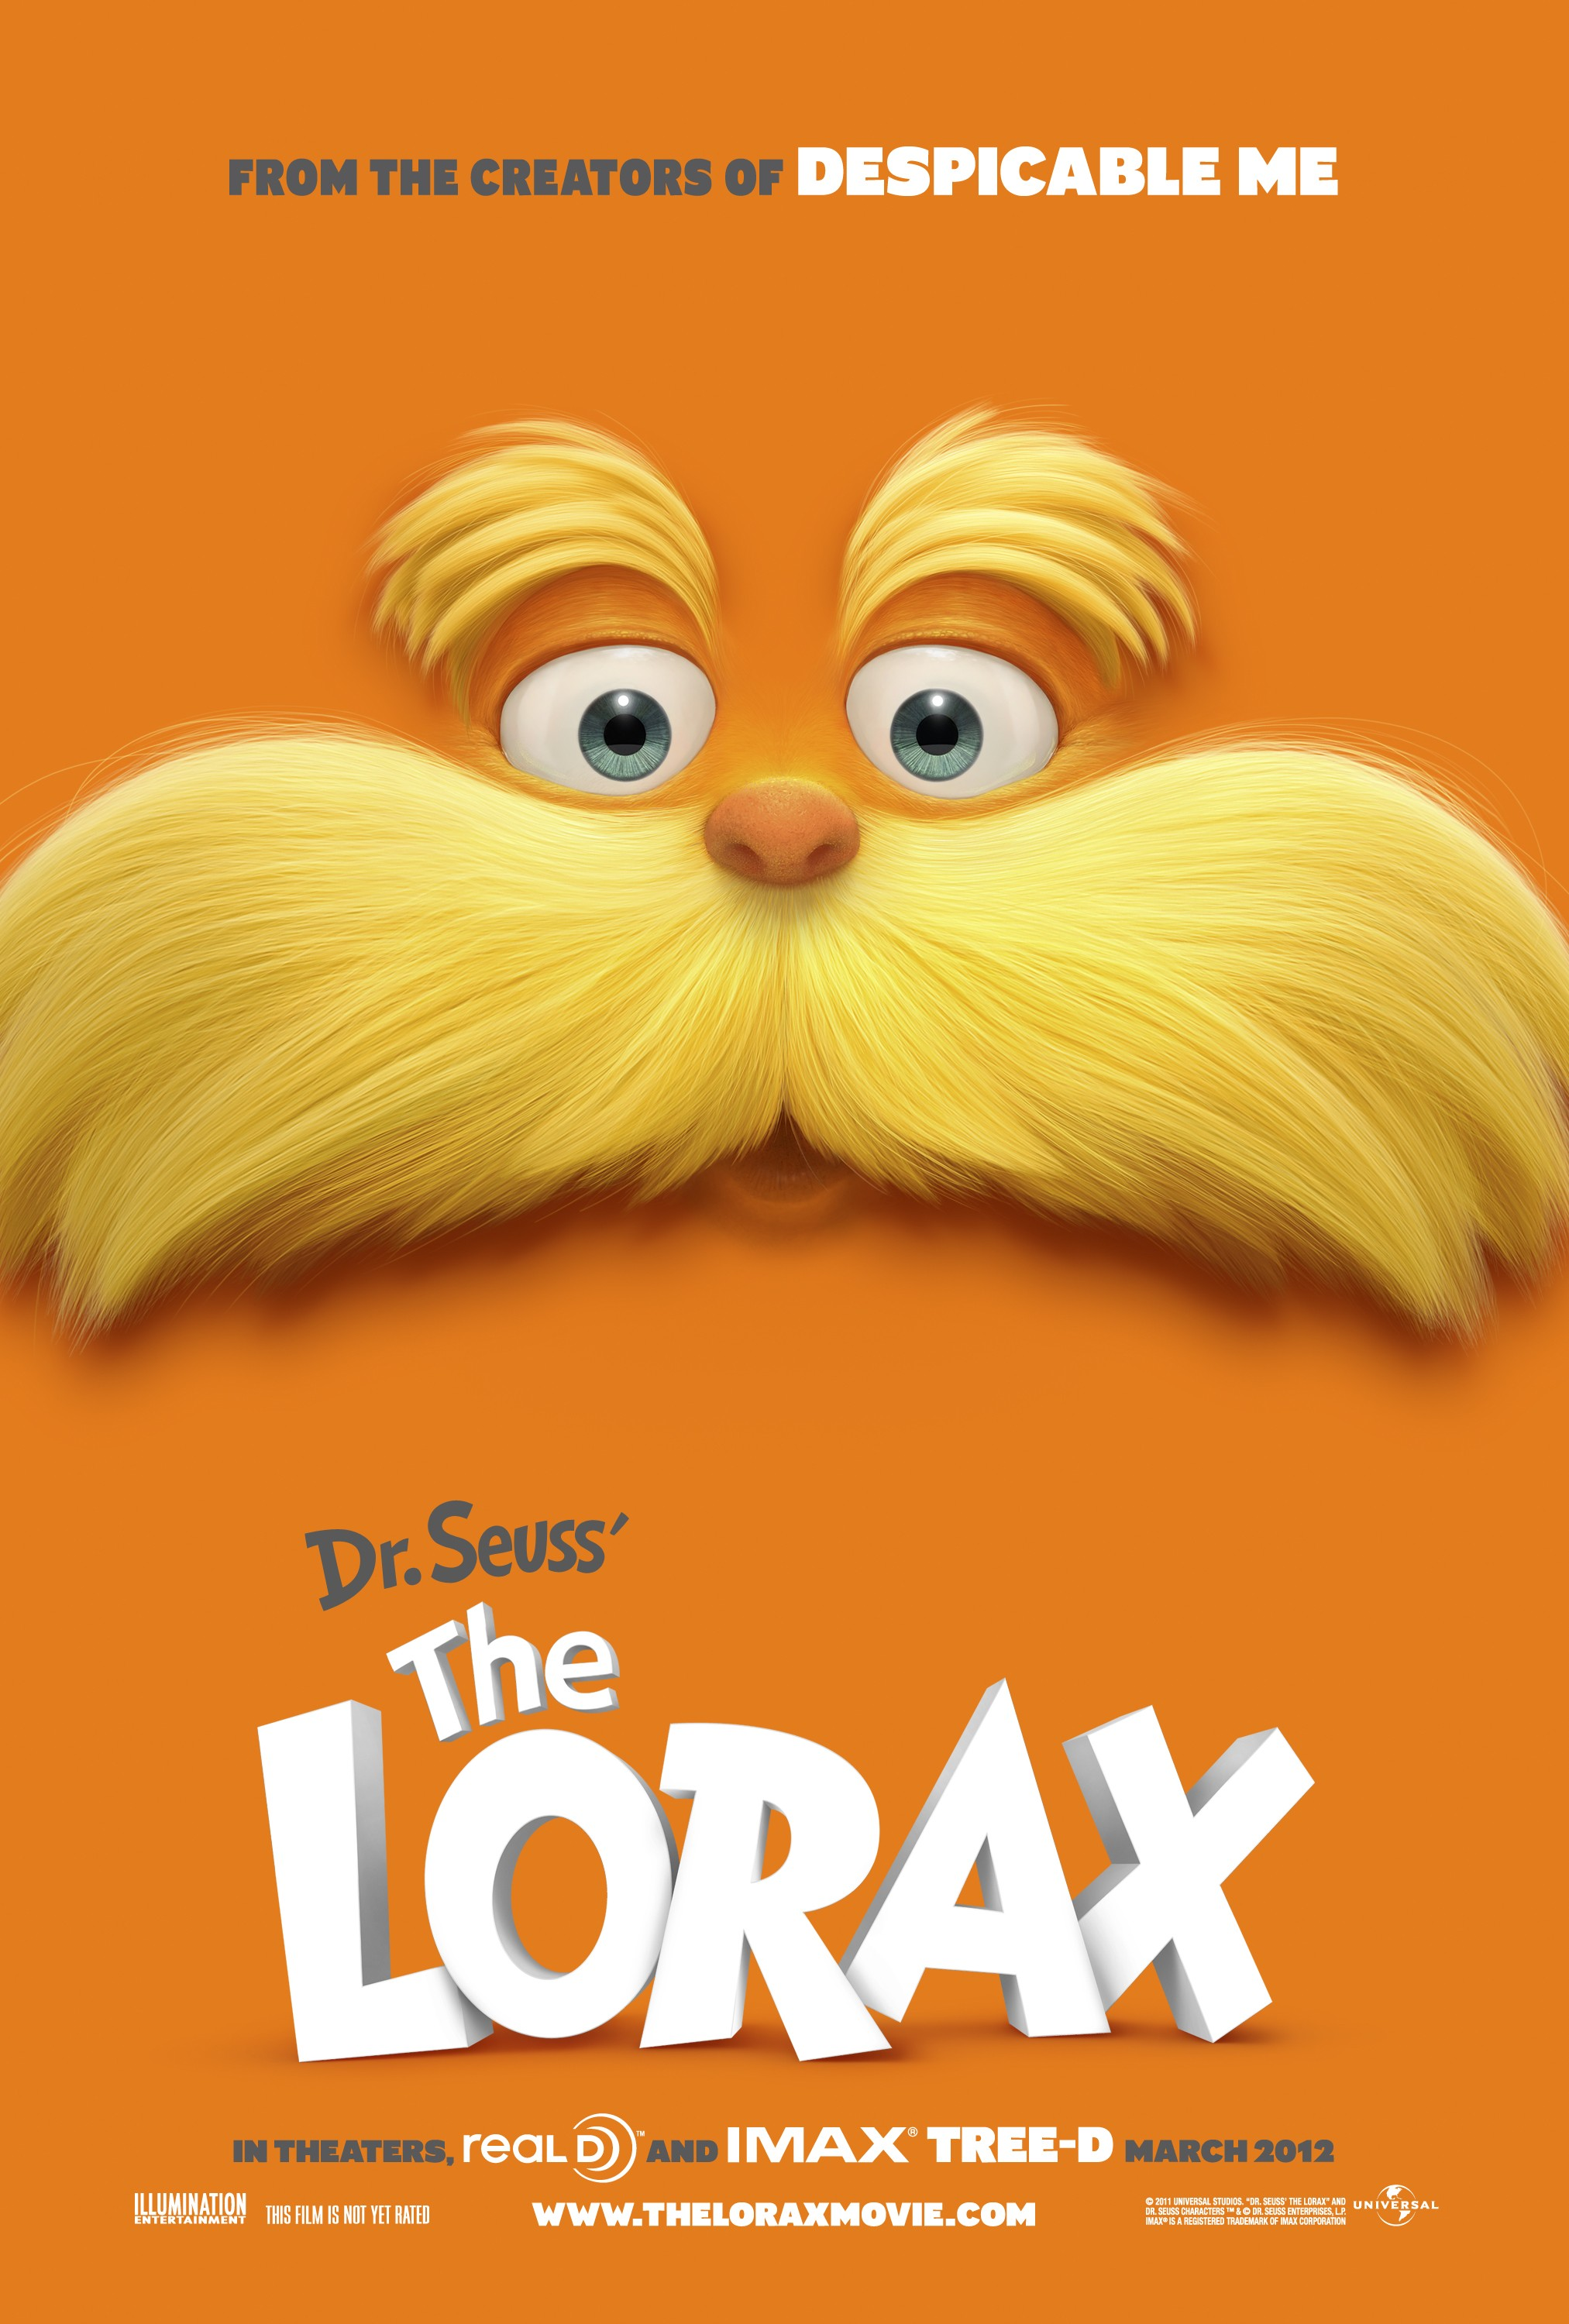 Dr. Seuss' The Lorax 老雷斯的故事